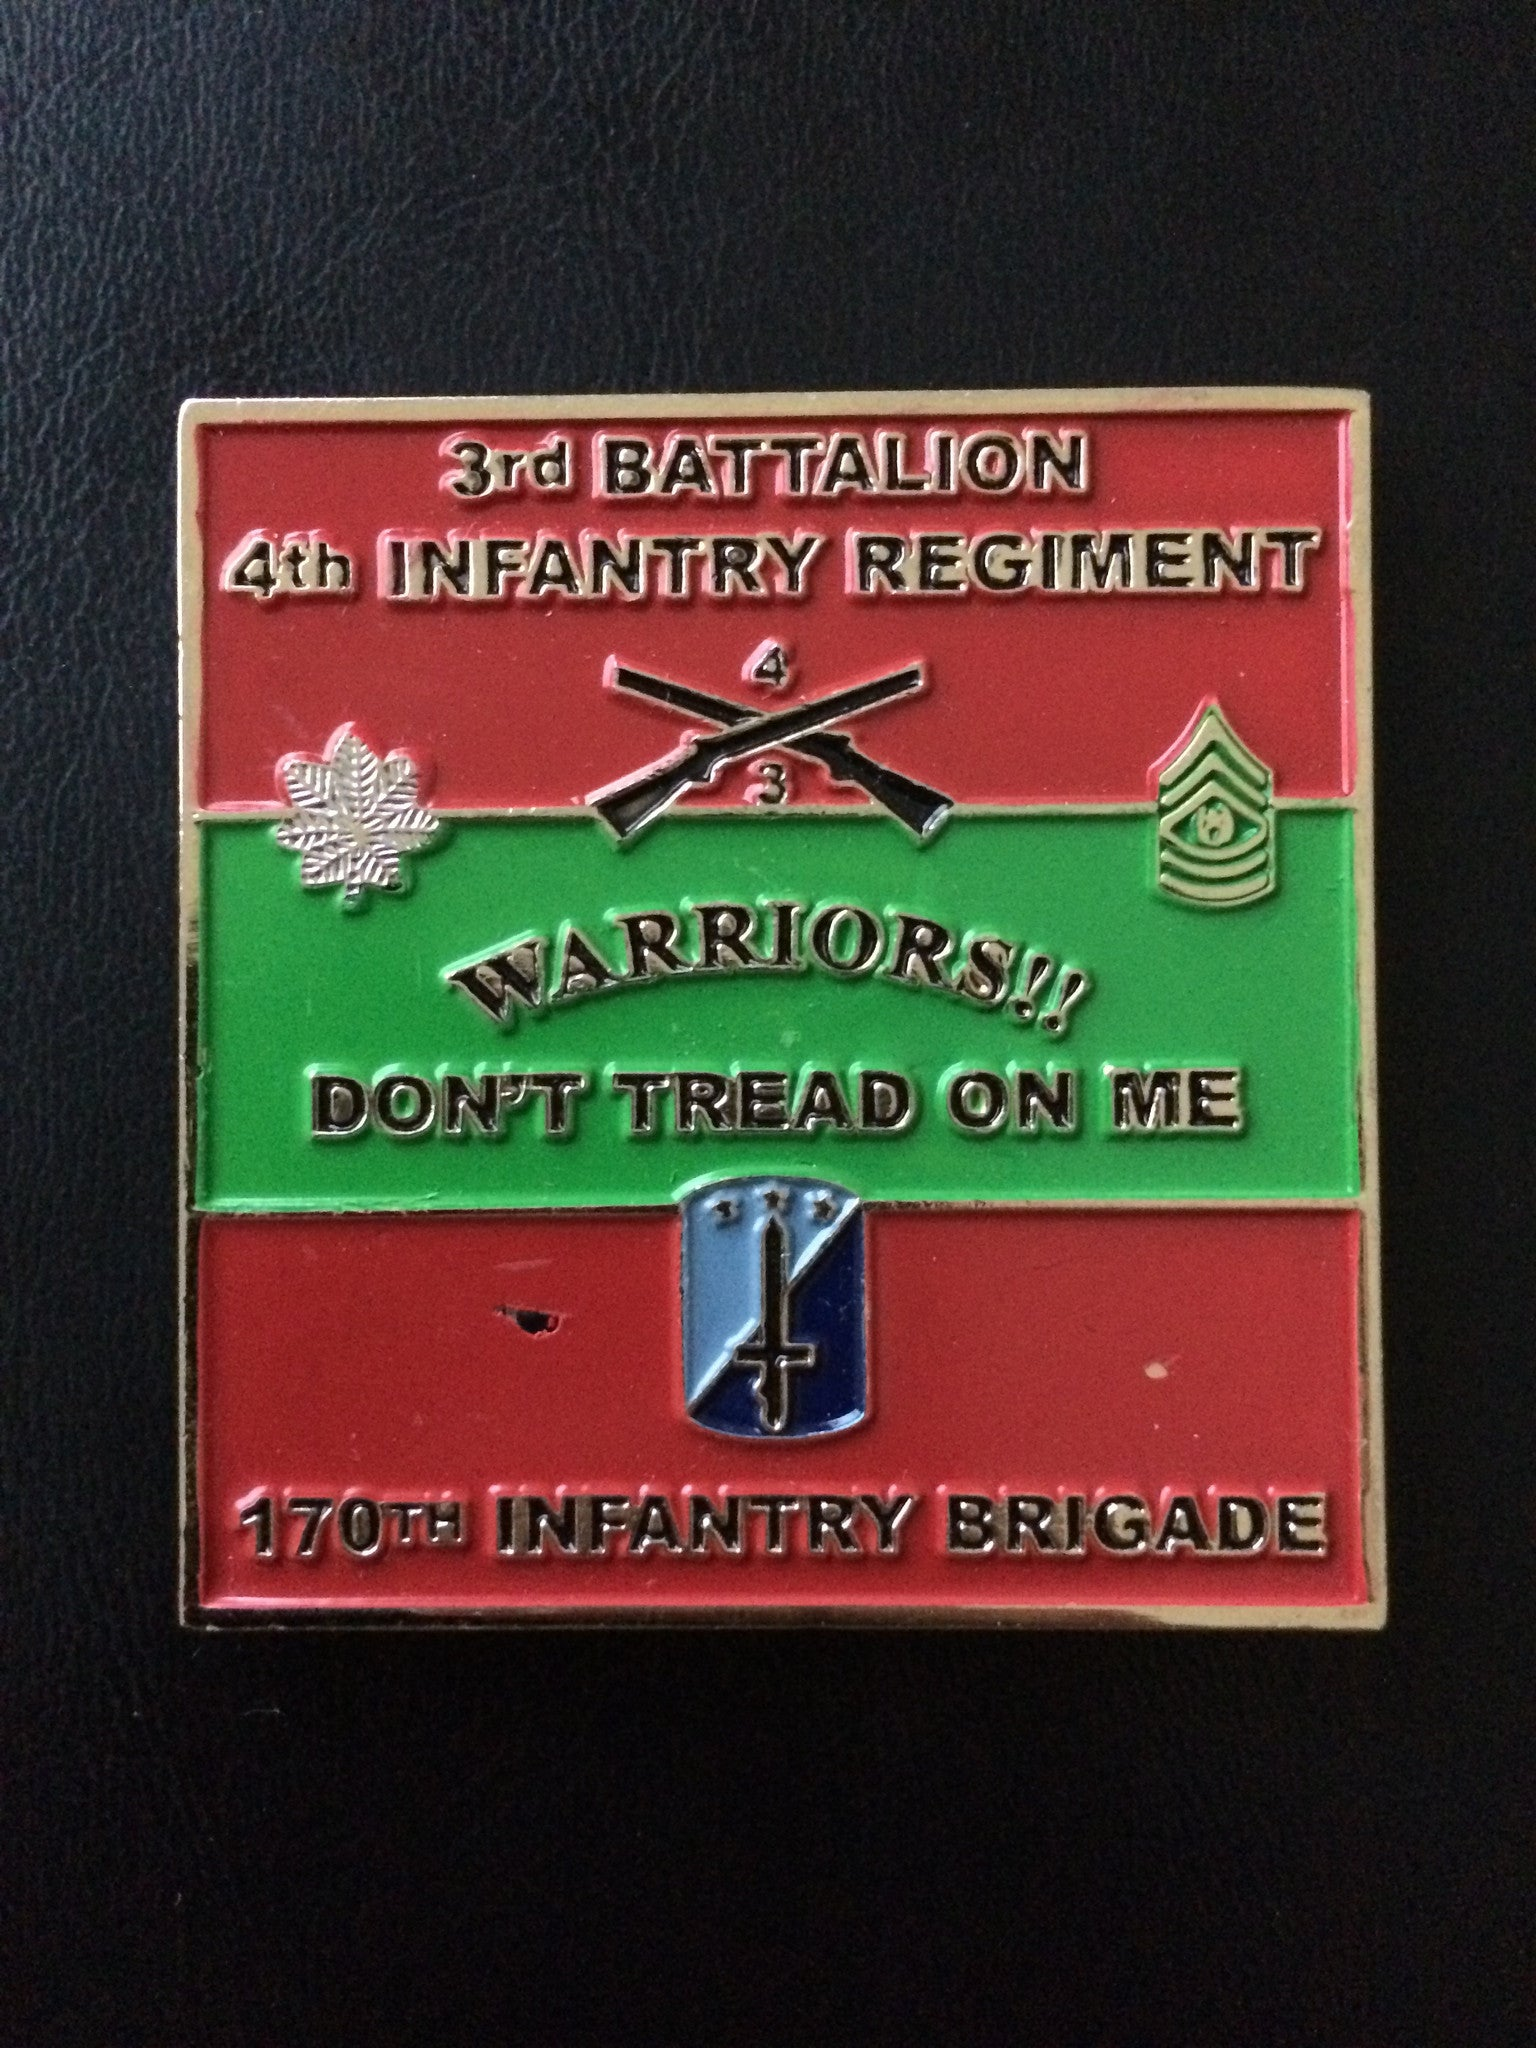 170th Infantry Brigade, 4th Infantry Regiment, 3rd Battalion Commander and CSM